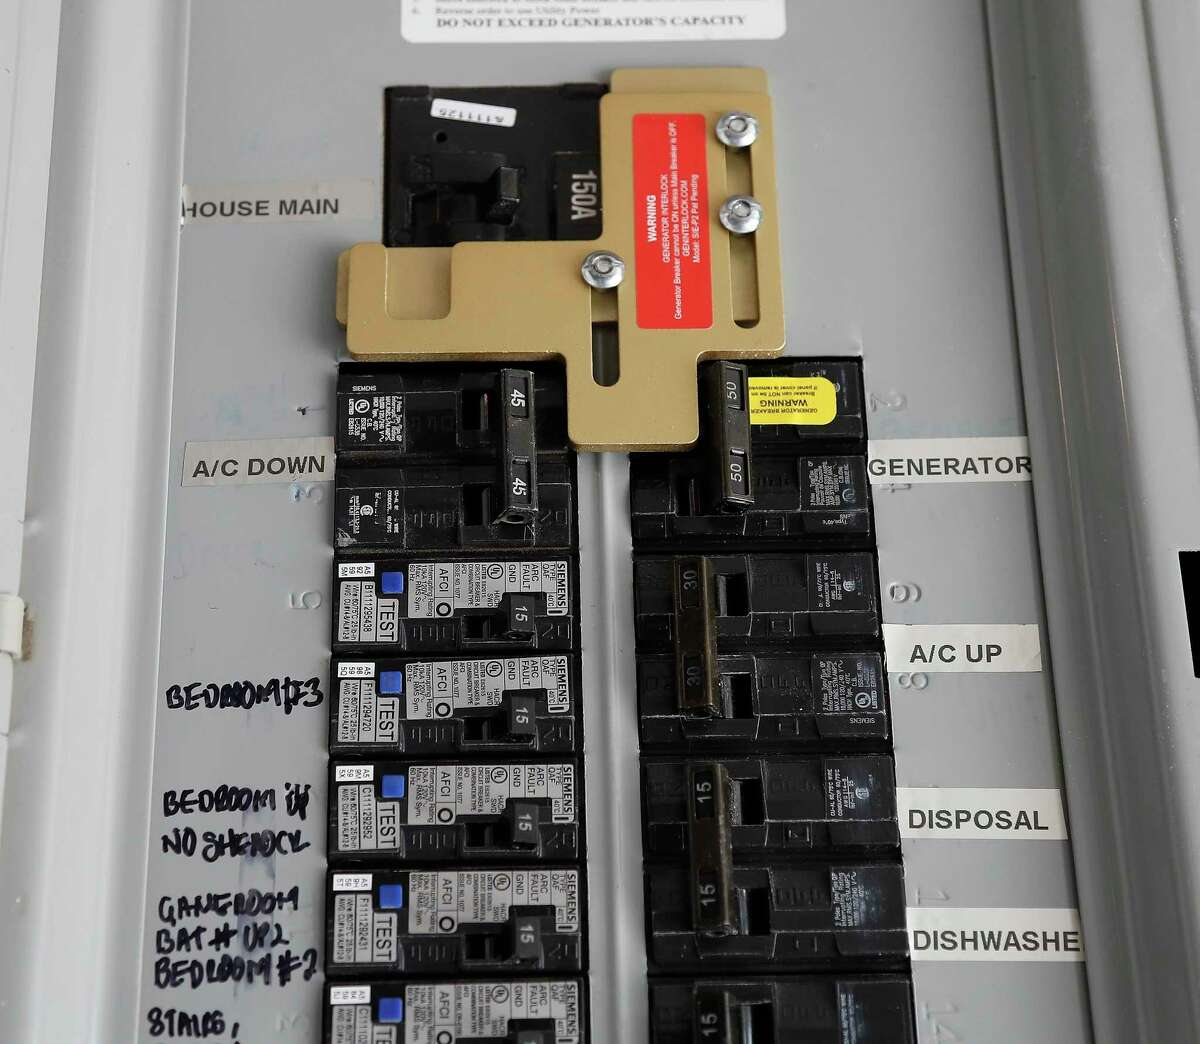 Brian Milan's fuse box with a switch for his portable generator that he has retrofitted to power his home in the event of power outages, Monday, May 24, 2021, in Cypress. Milan, a Cypress resident manages a local Facebook group on retrofitting homes with portable generators.